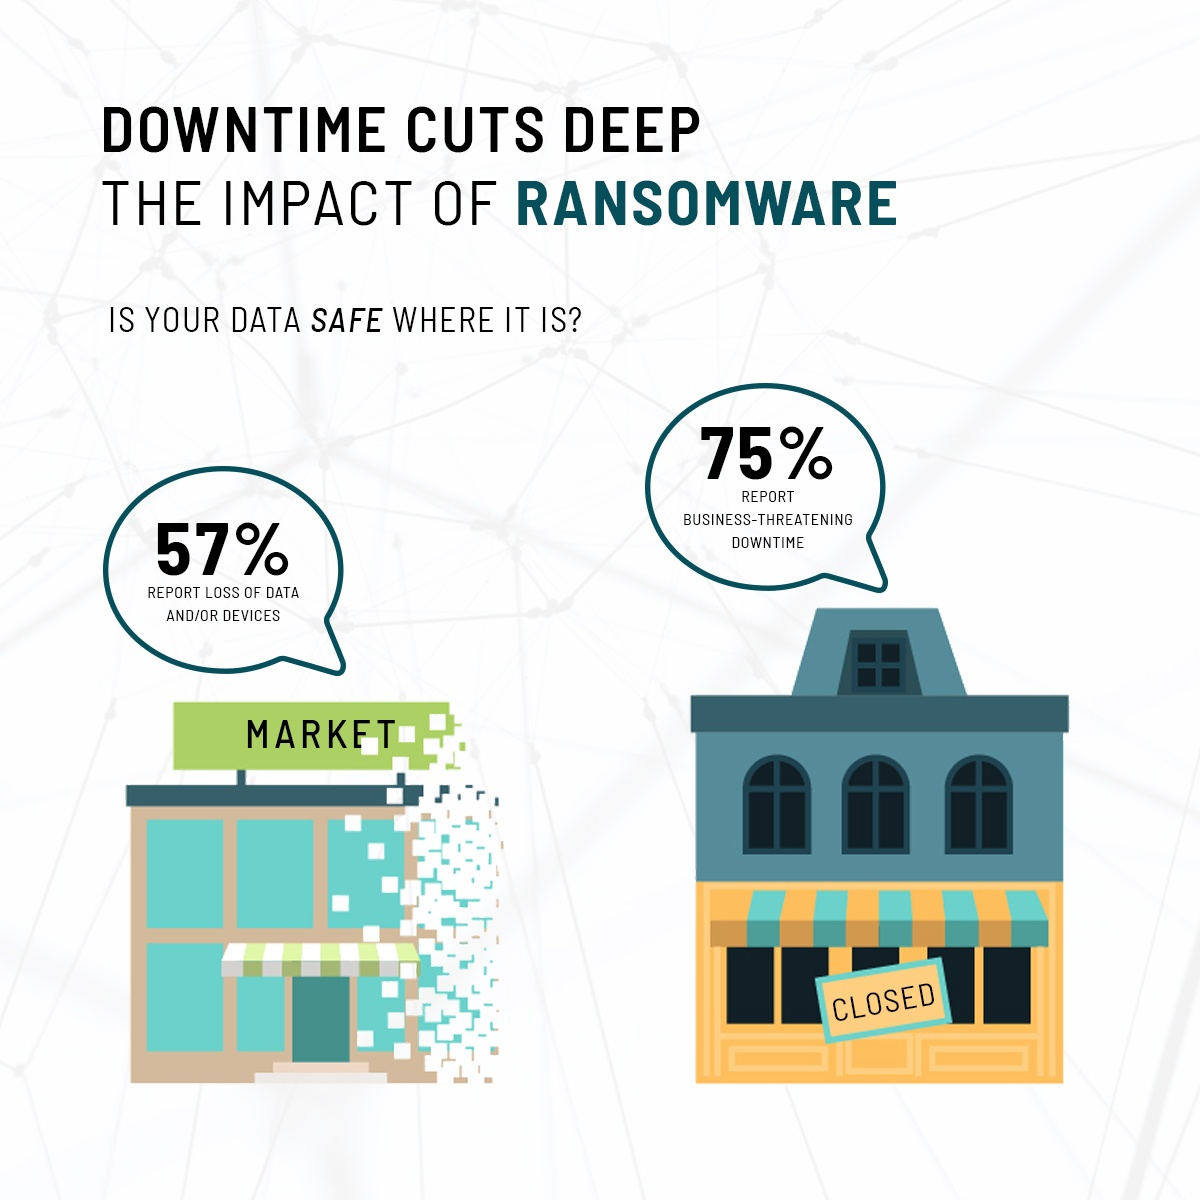 The Impact of Ransomware